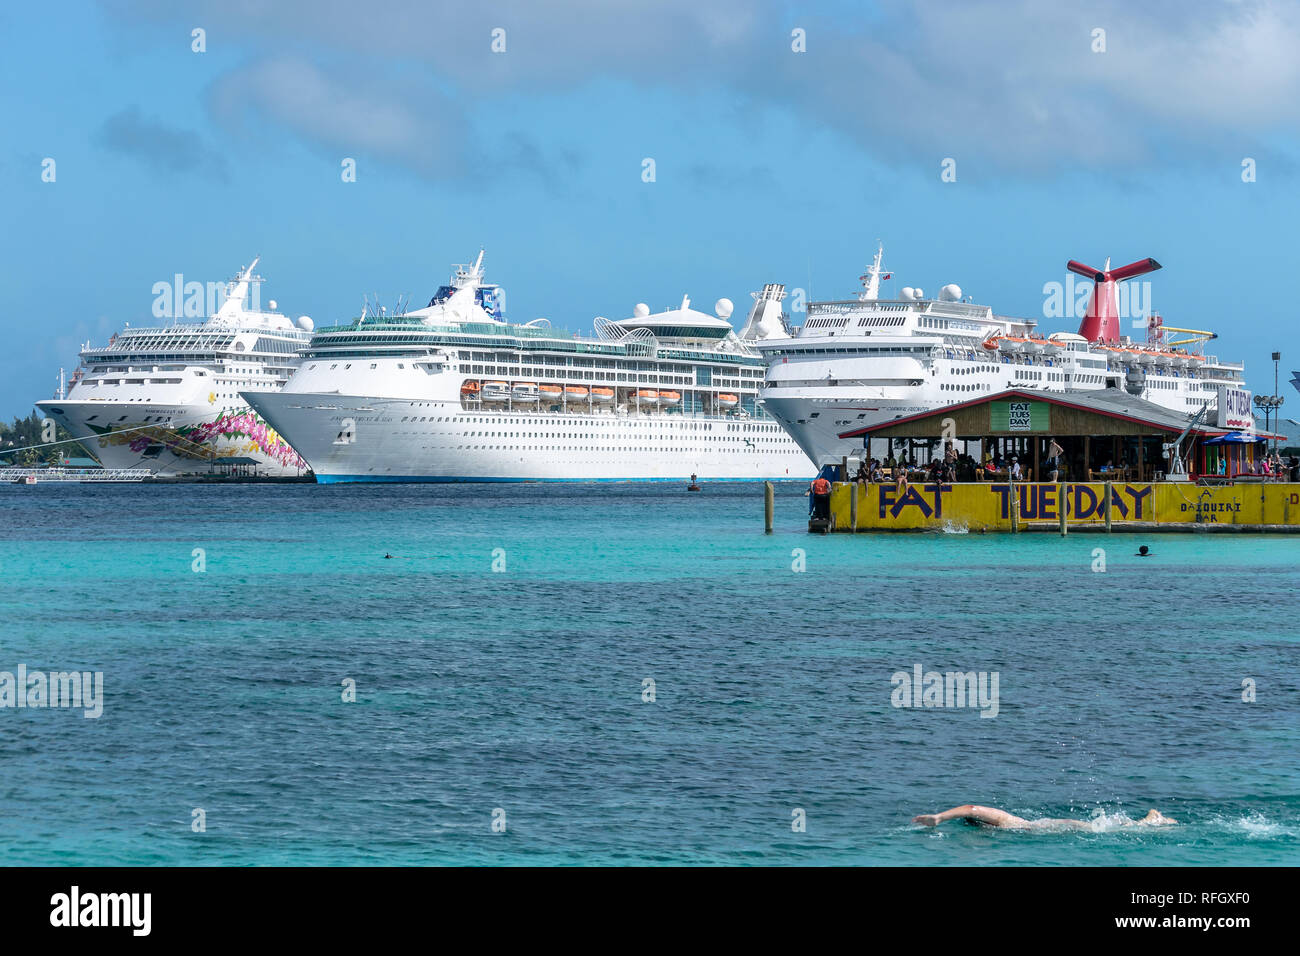 Nassau, Bahamas - December 02 2015: Norwegian Sky, Royal Caribbean Enchantment of the Seas and Carnival Fascination cruise ships docked in Nassau - Stock Image